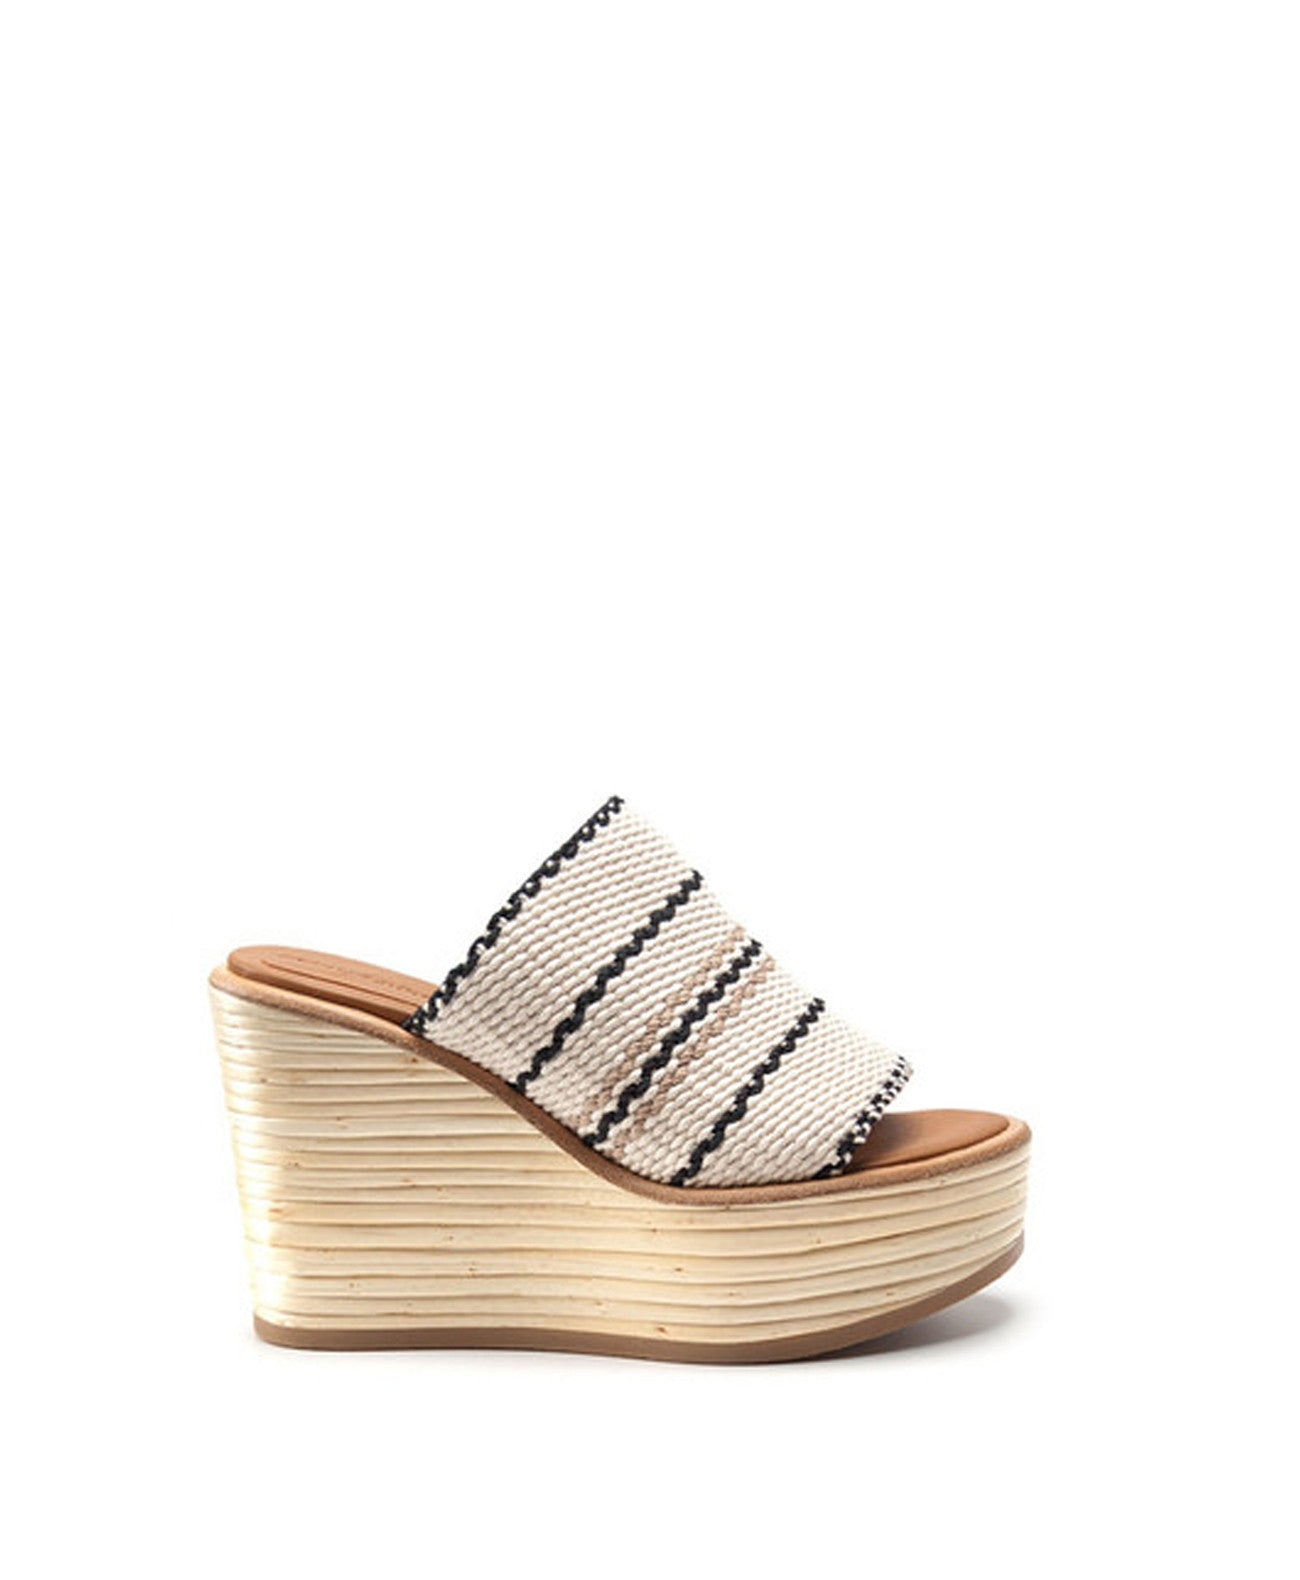 Bamboo Wedge Slide in White - Koko & Palenki - 1